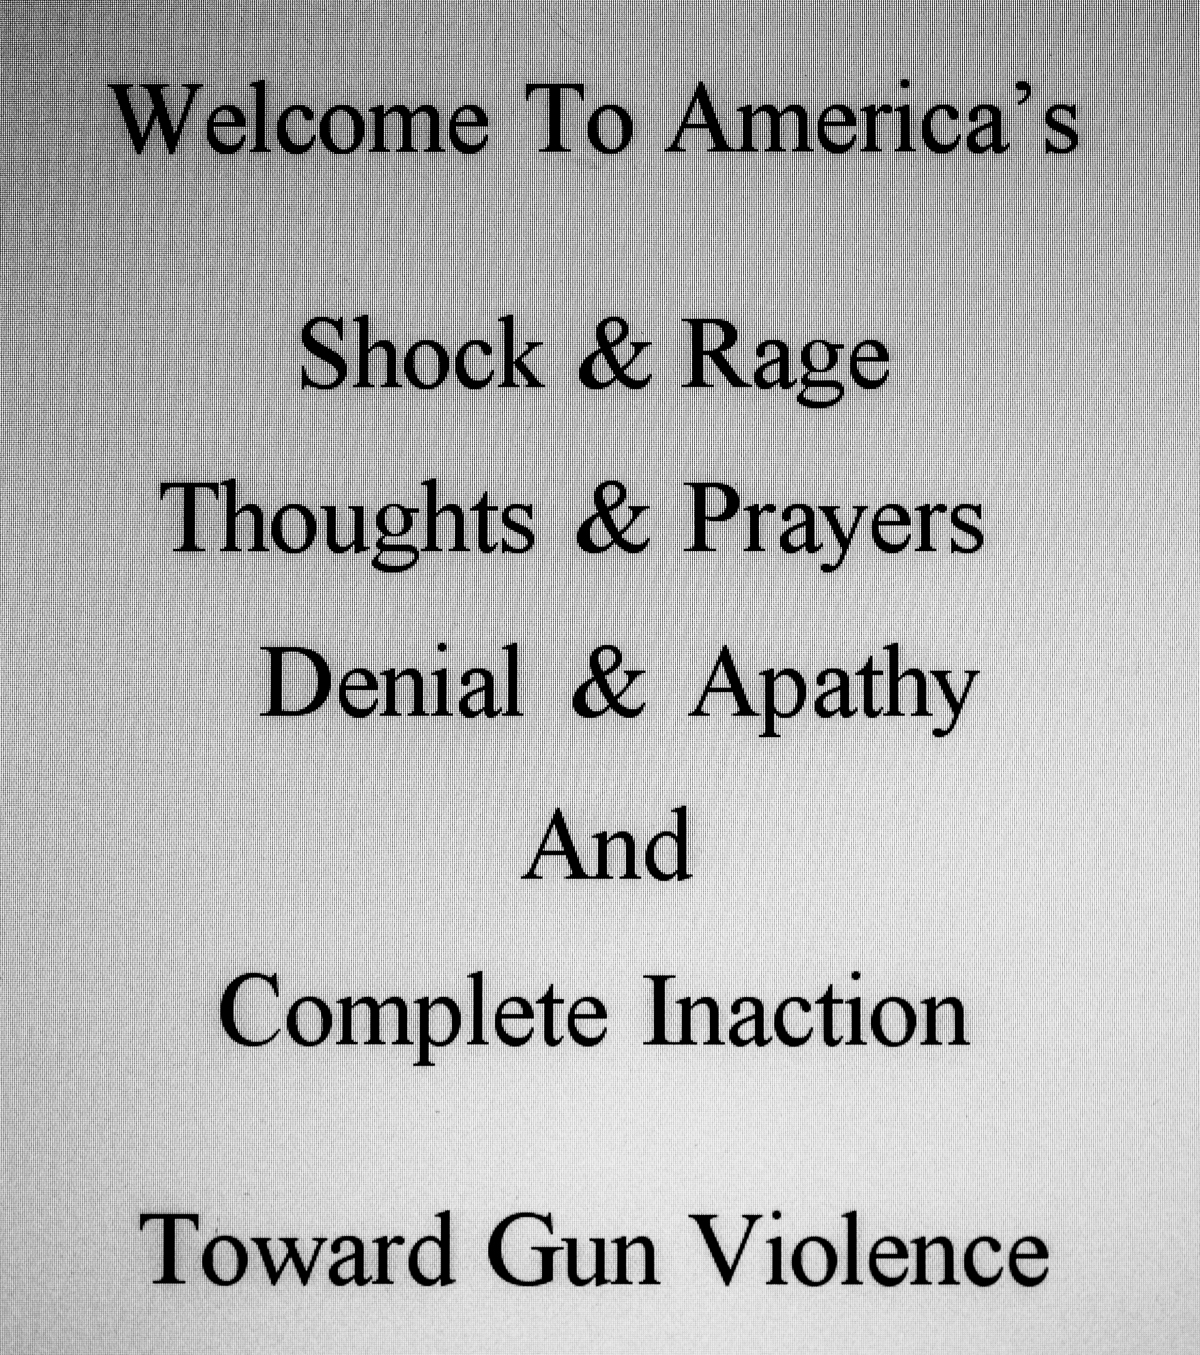 A Scrapbook Of Life In America:            Mass Shootings And Our 2ndAmendment